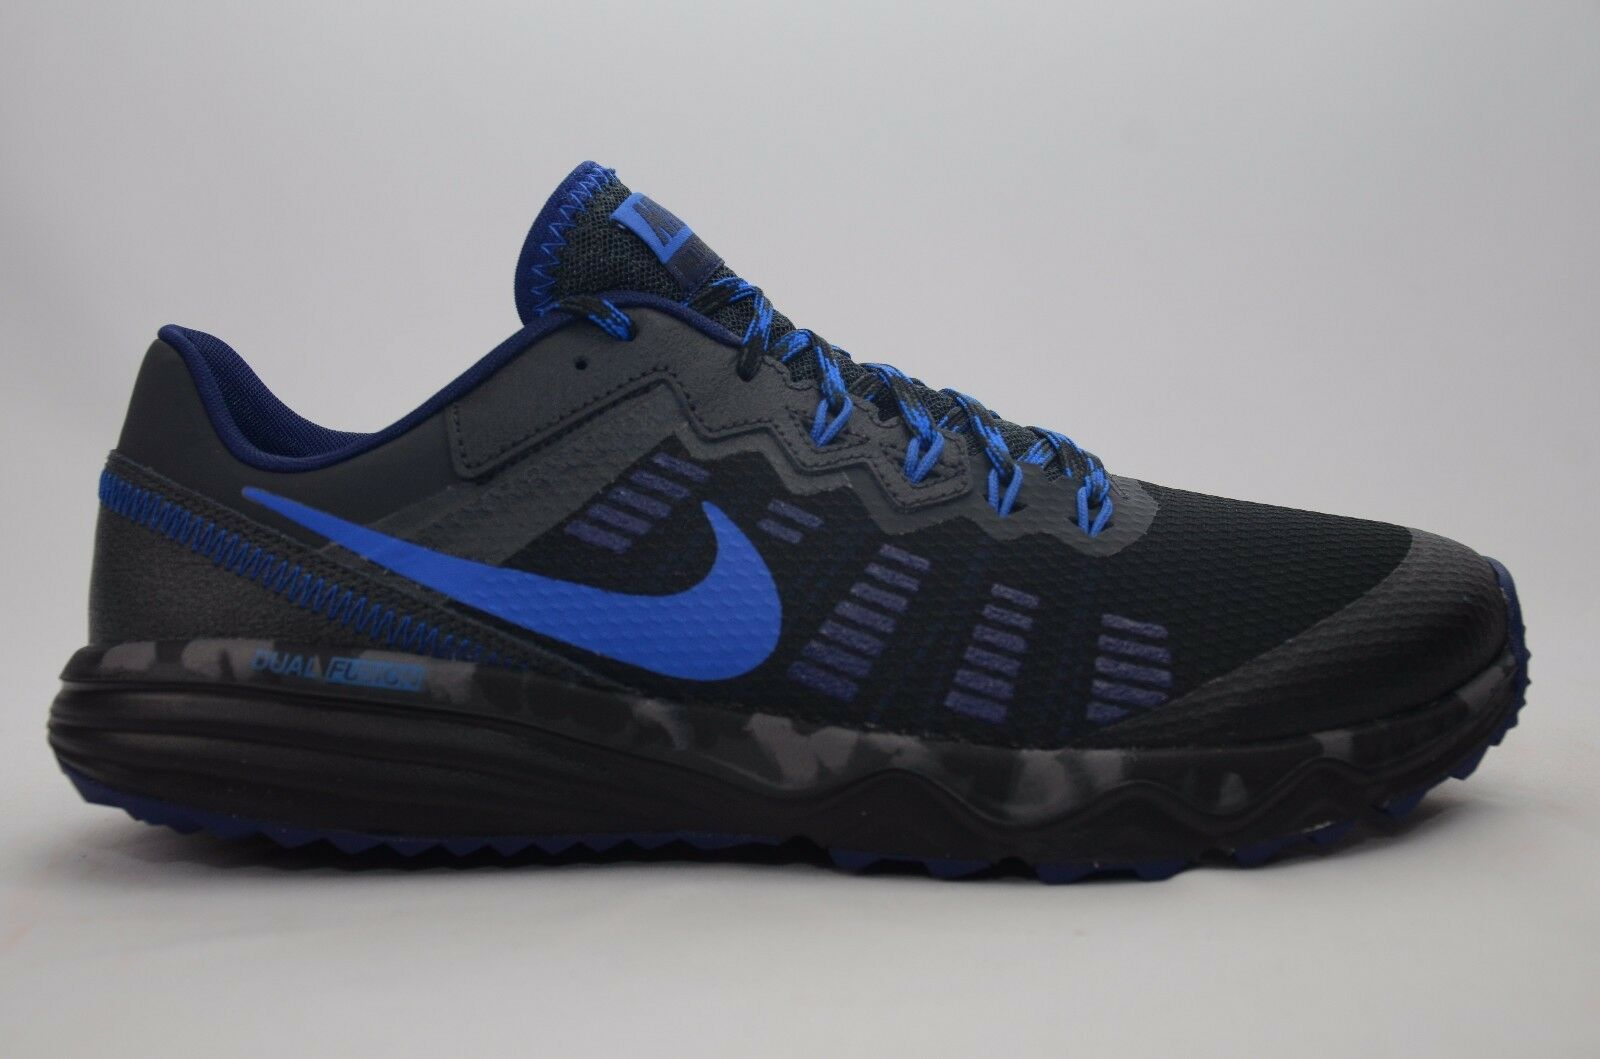 Nike - Nike Dual Fusion Trail 2 Black/Cobalt Men's Size 8-13 New in Box 819146 004